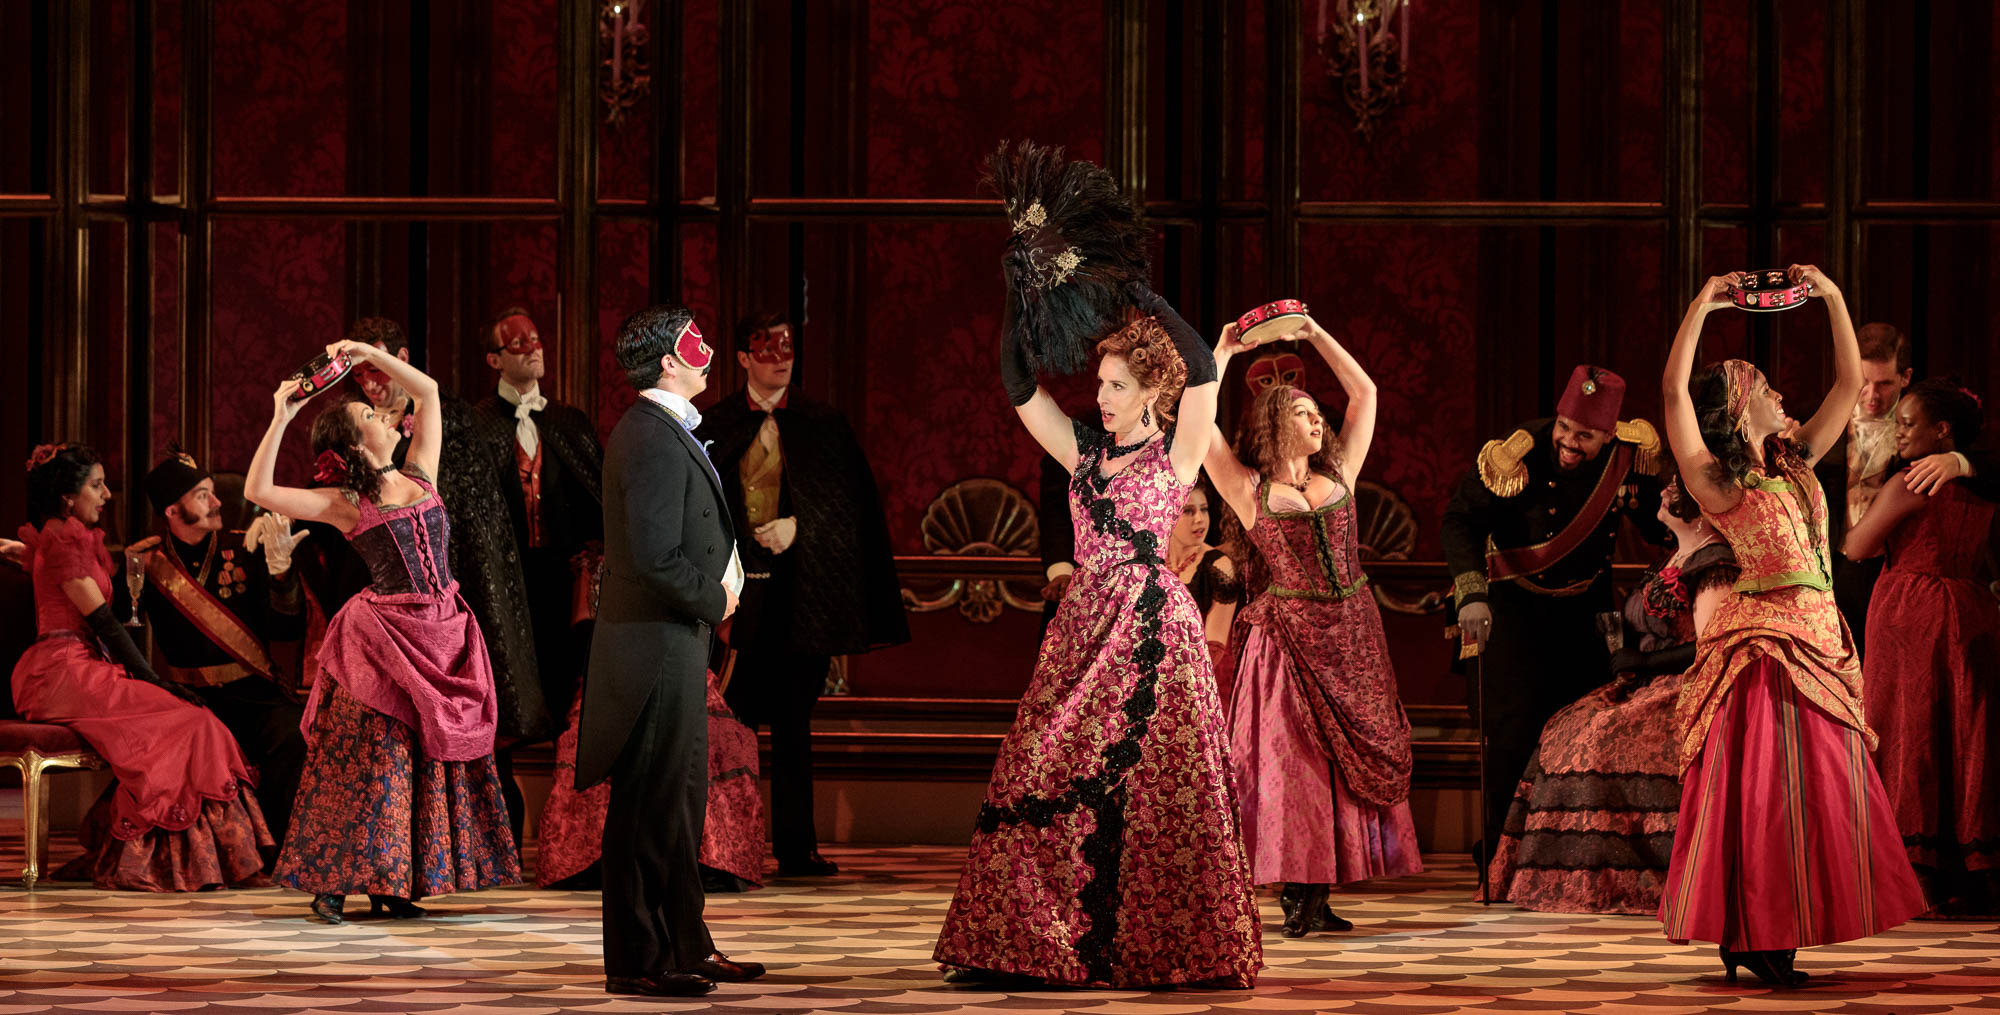 Cast dances on stage for the 2019 prodcution of La traviata.